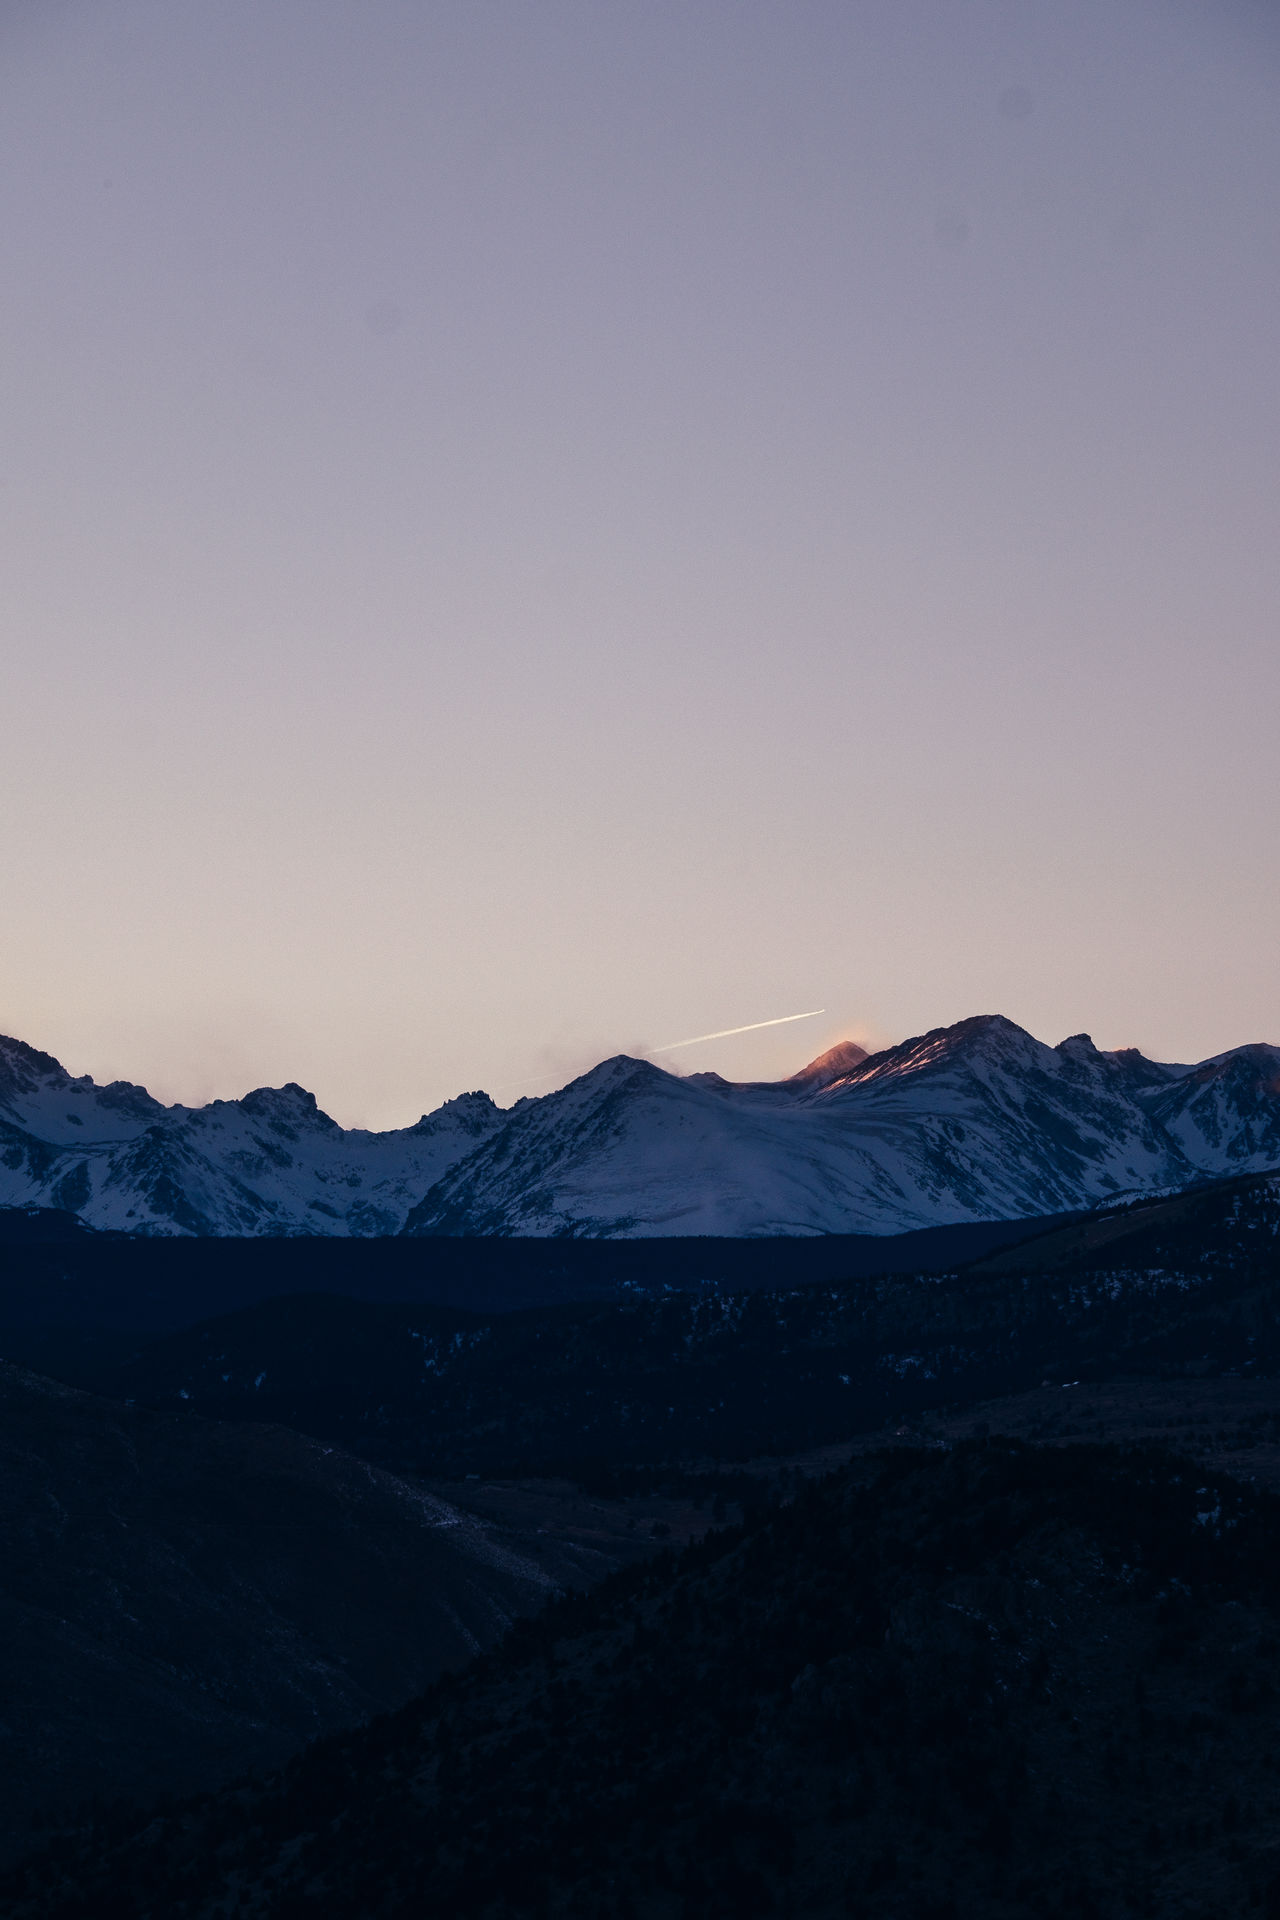 Rockies Sunset Mountain Scenics Landscape Beauty In Nature Nature Tranquil Scene Tranquility No People Sky Outdoors Day Colorado Adventure Travel Tourism Miles Away